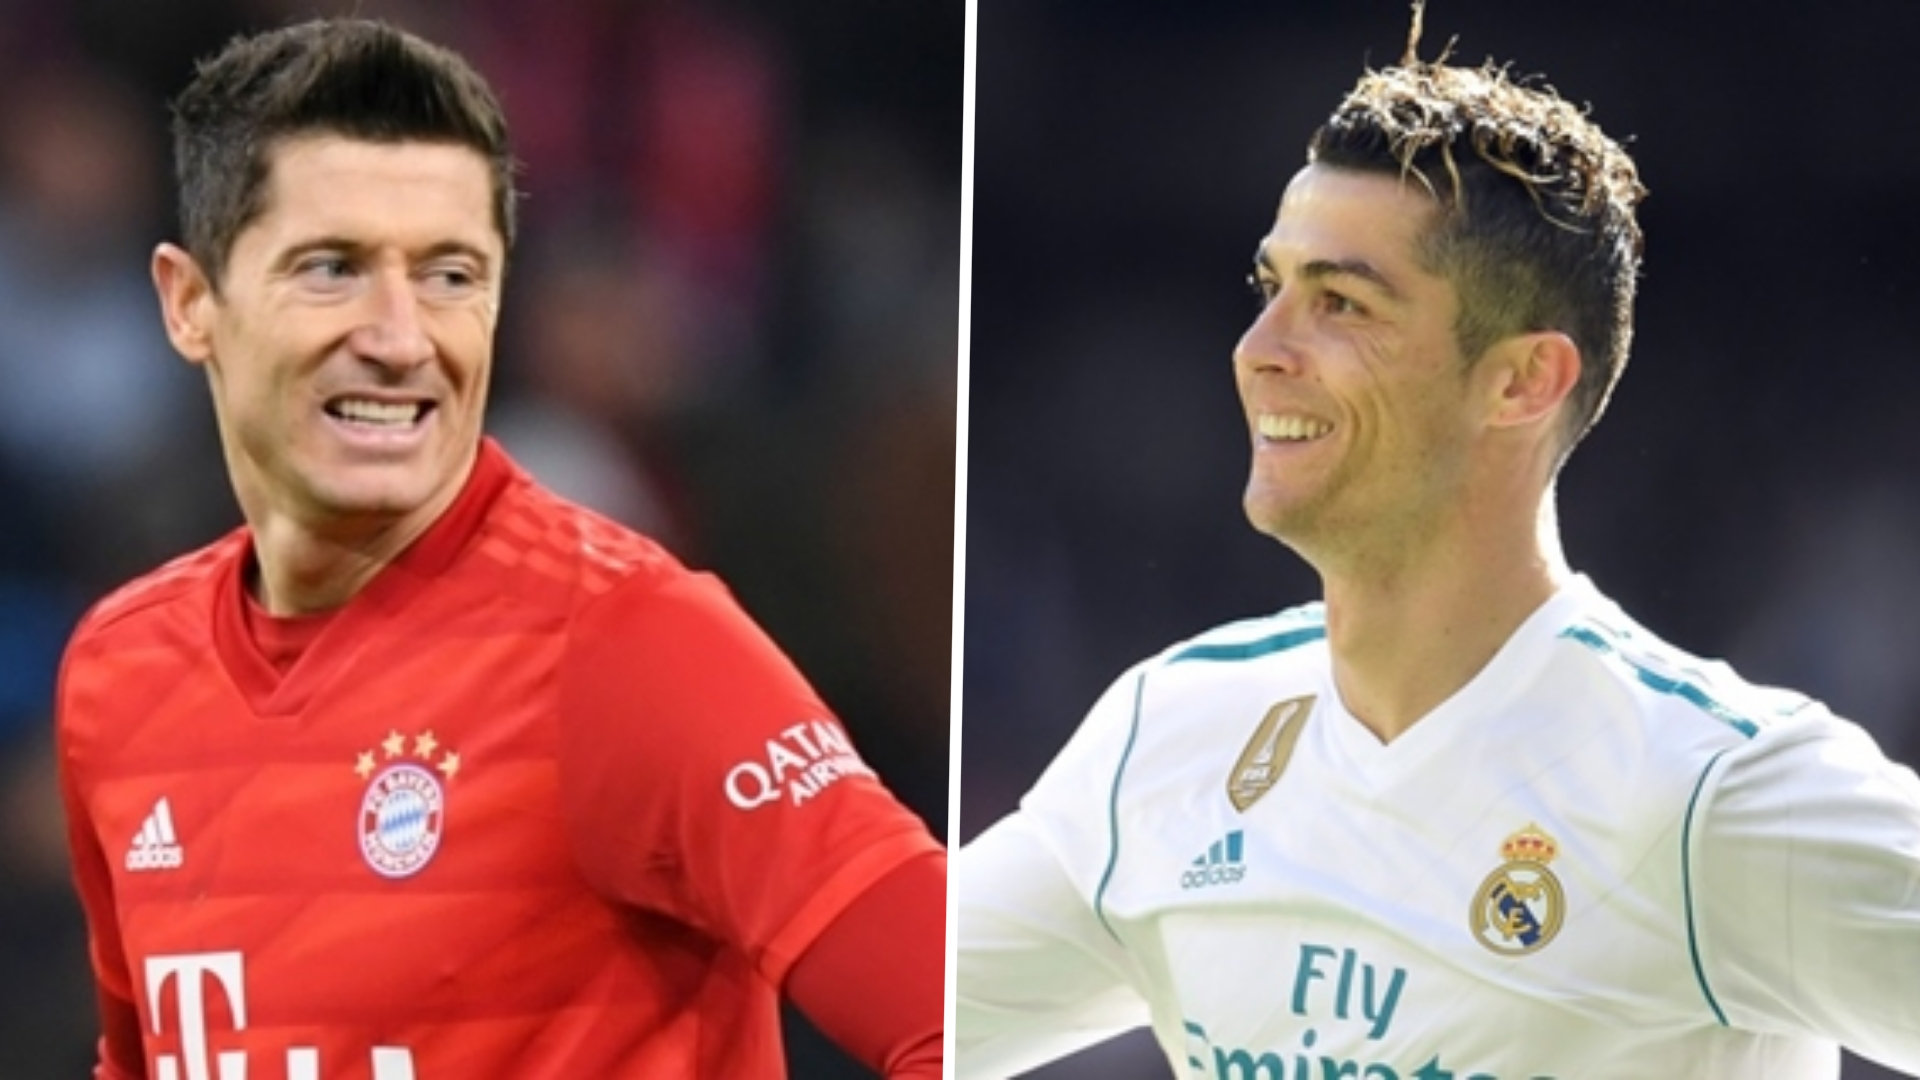 Lewandowski wanted to join Real Madrid to play with Ronaldo, claims Bayern Munich striker's former agent